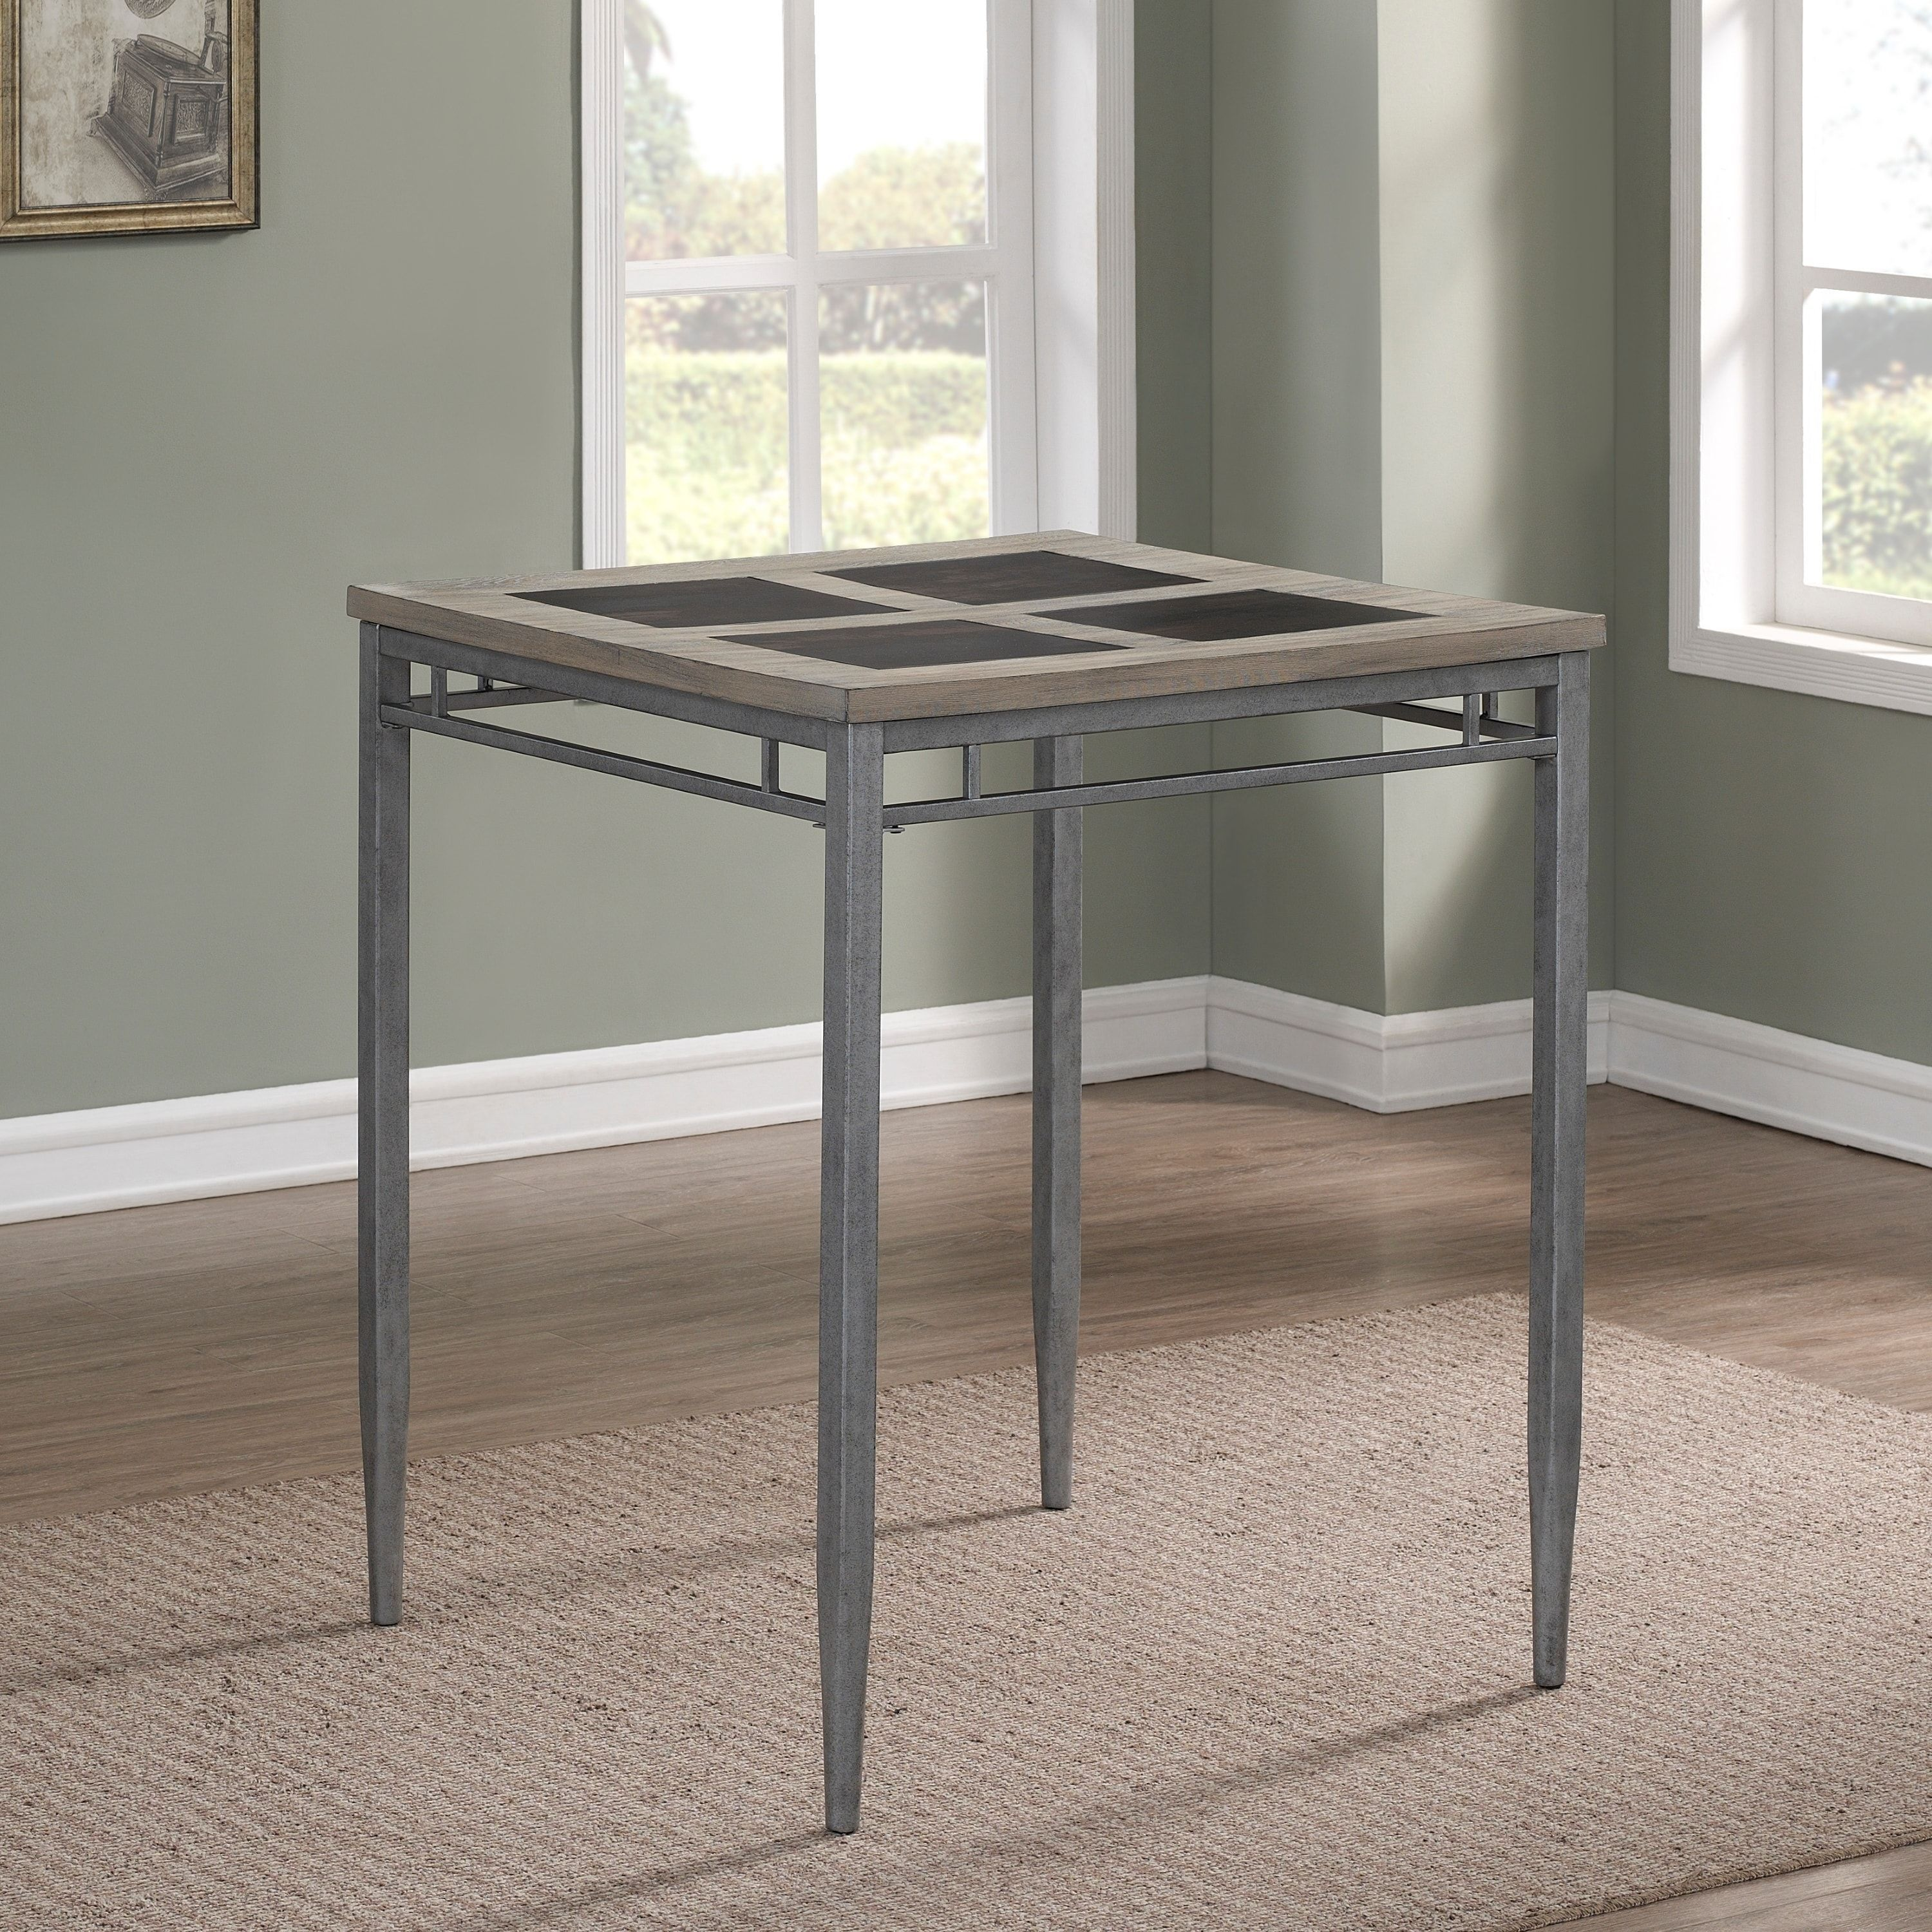 Genial Greyson Living Bexley Grey/Pewter Metal 36 Inch Counter Height Table